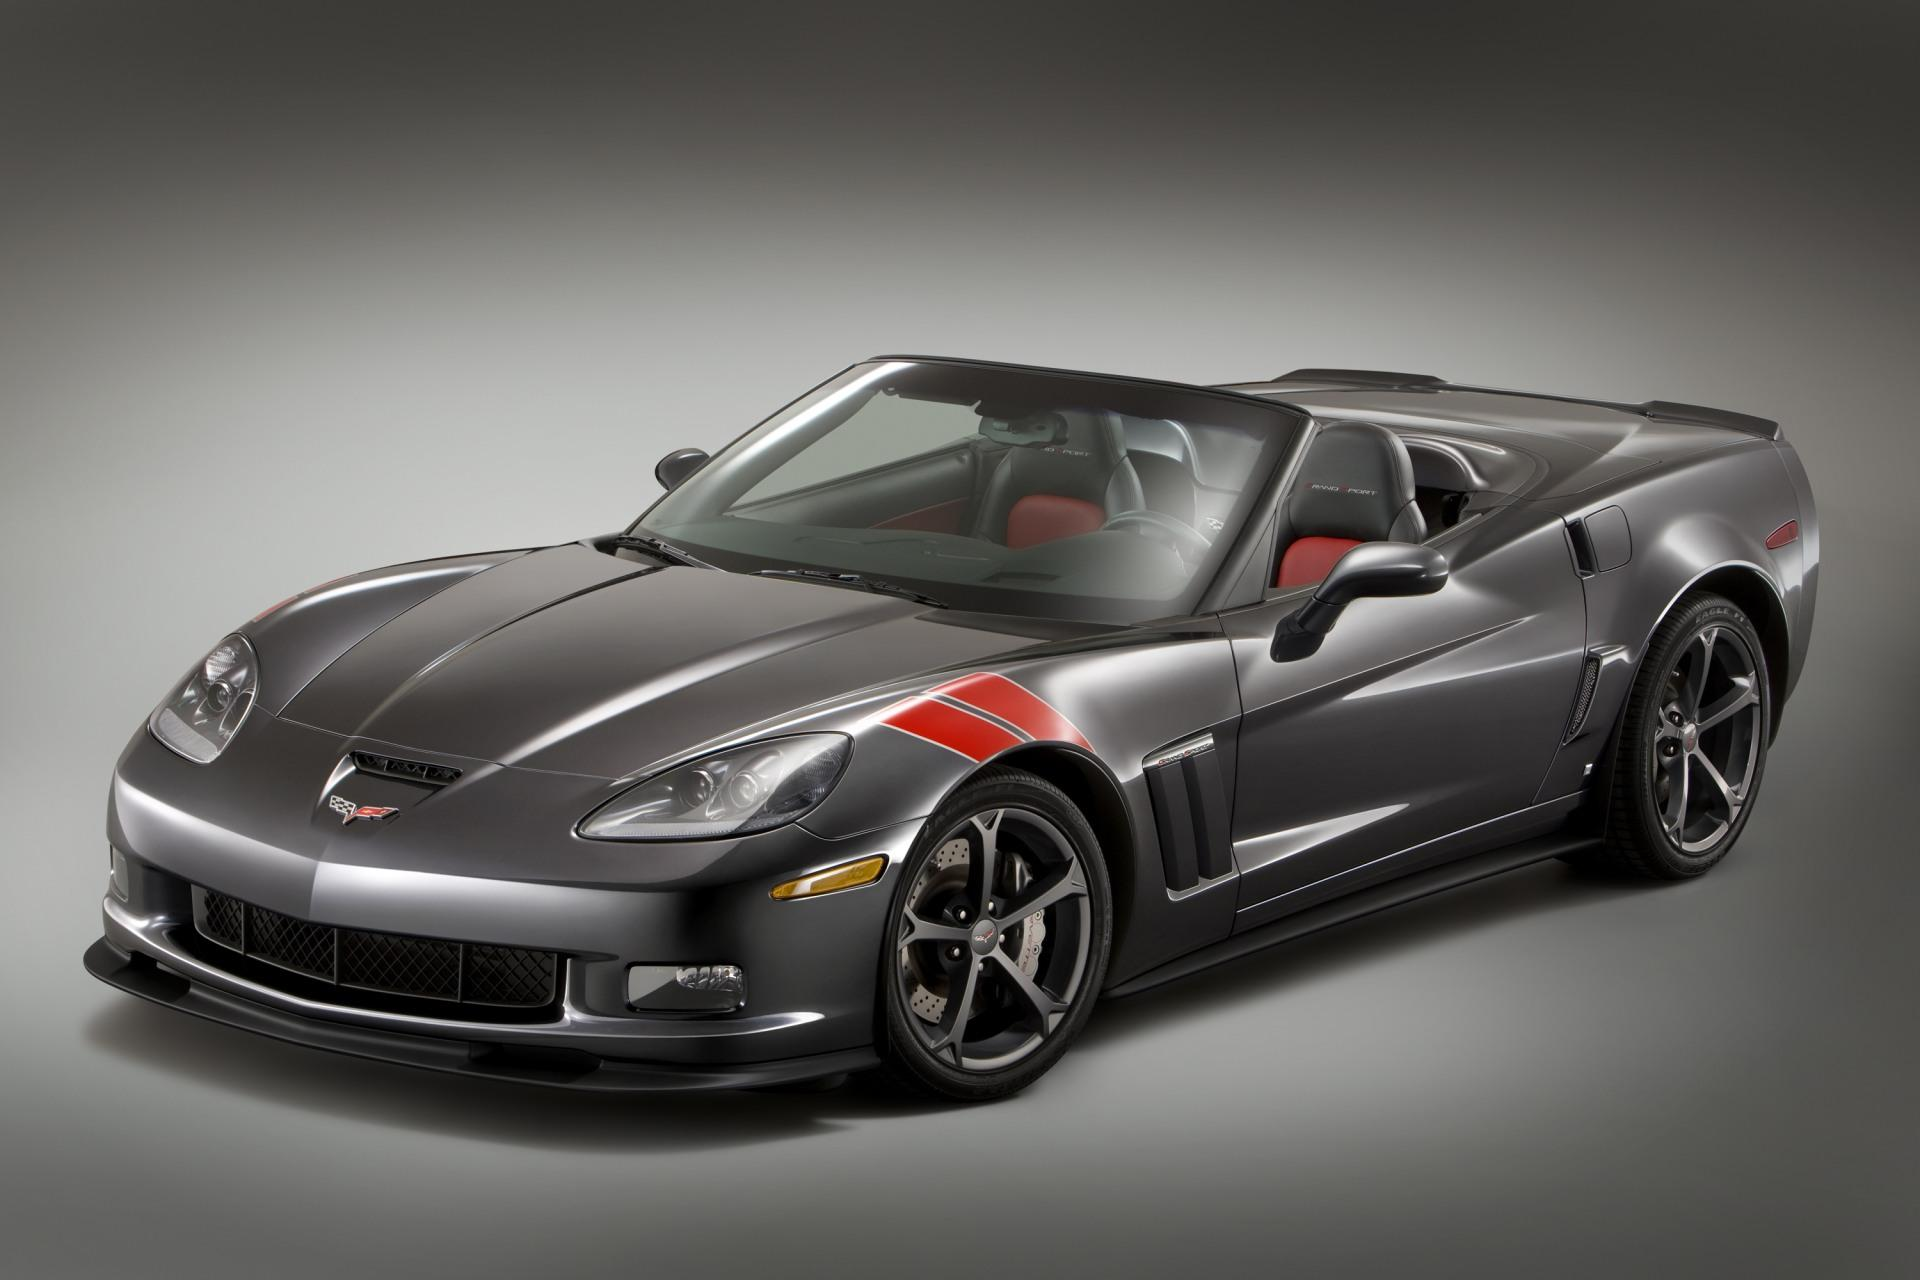 2010 chevrolet corvette grand sport heritage package. Black Bedroom Furniture Sets. Home Design Ideas